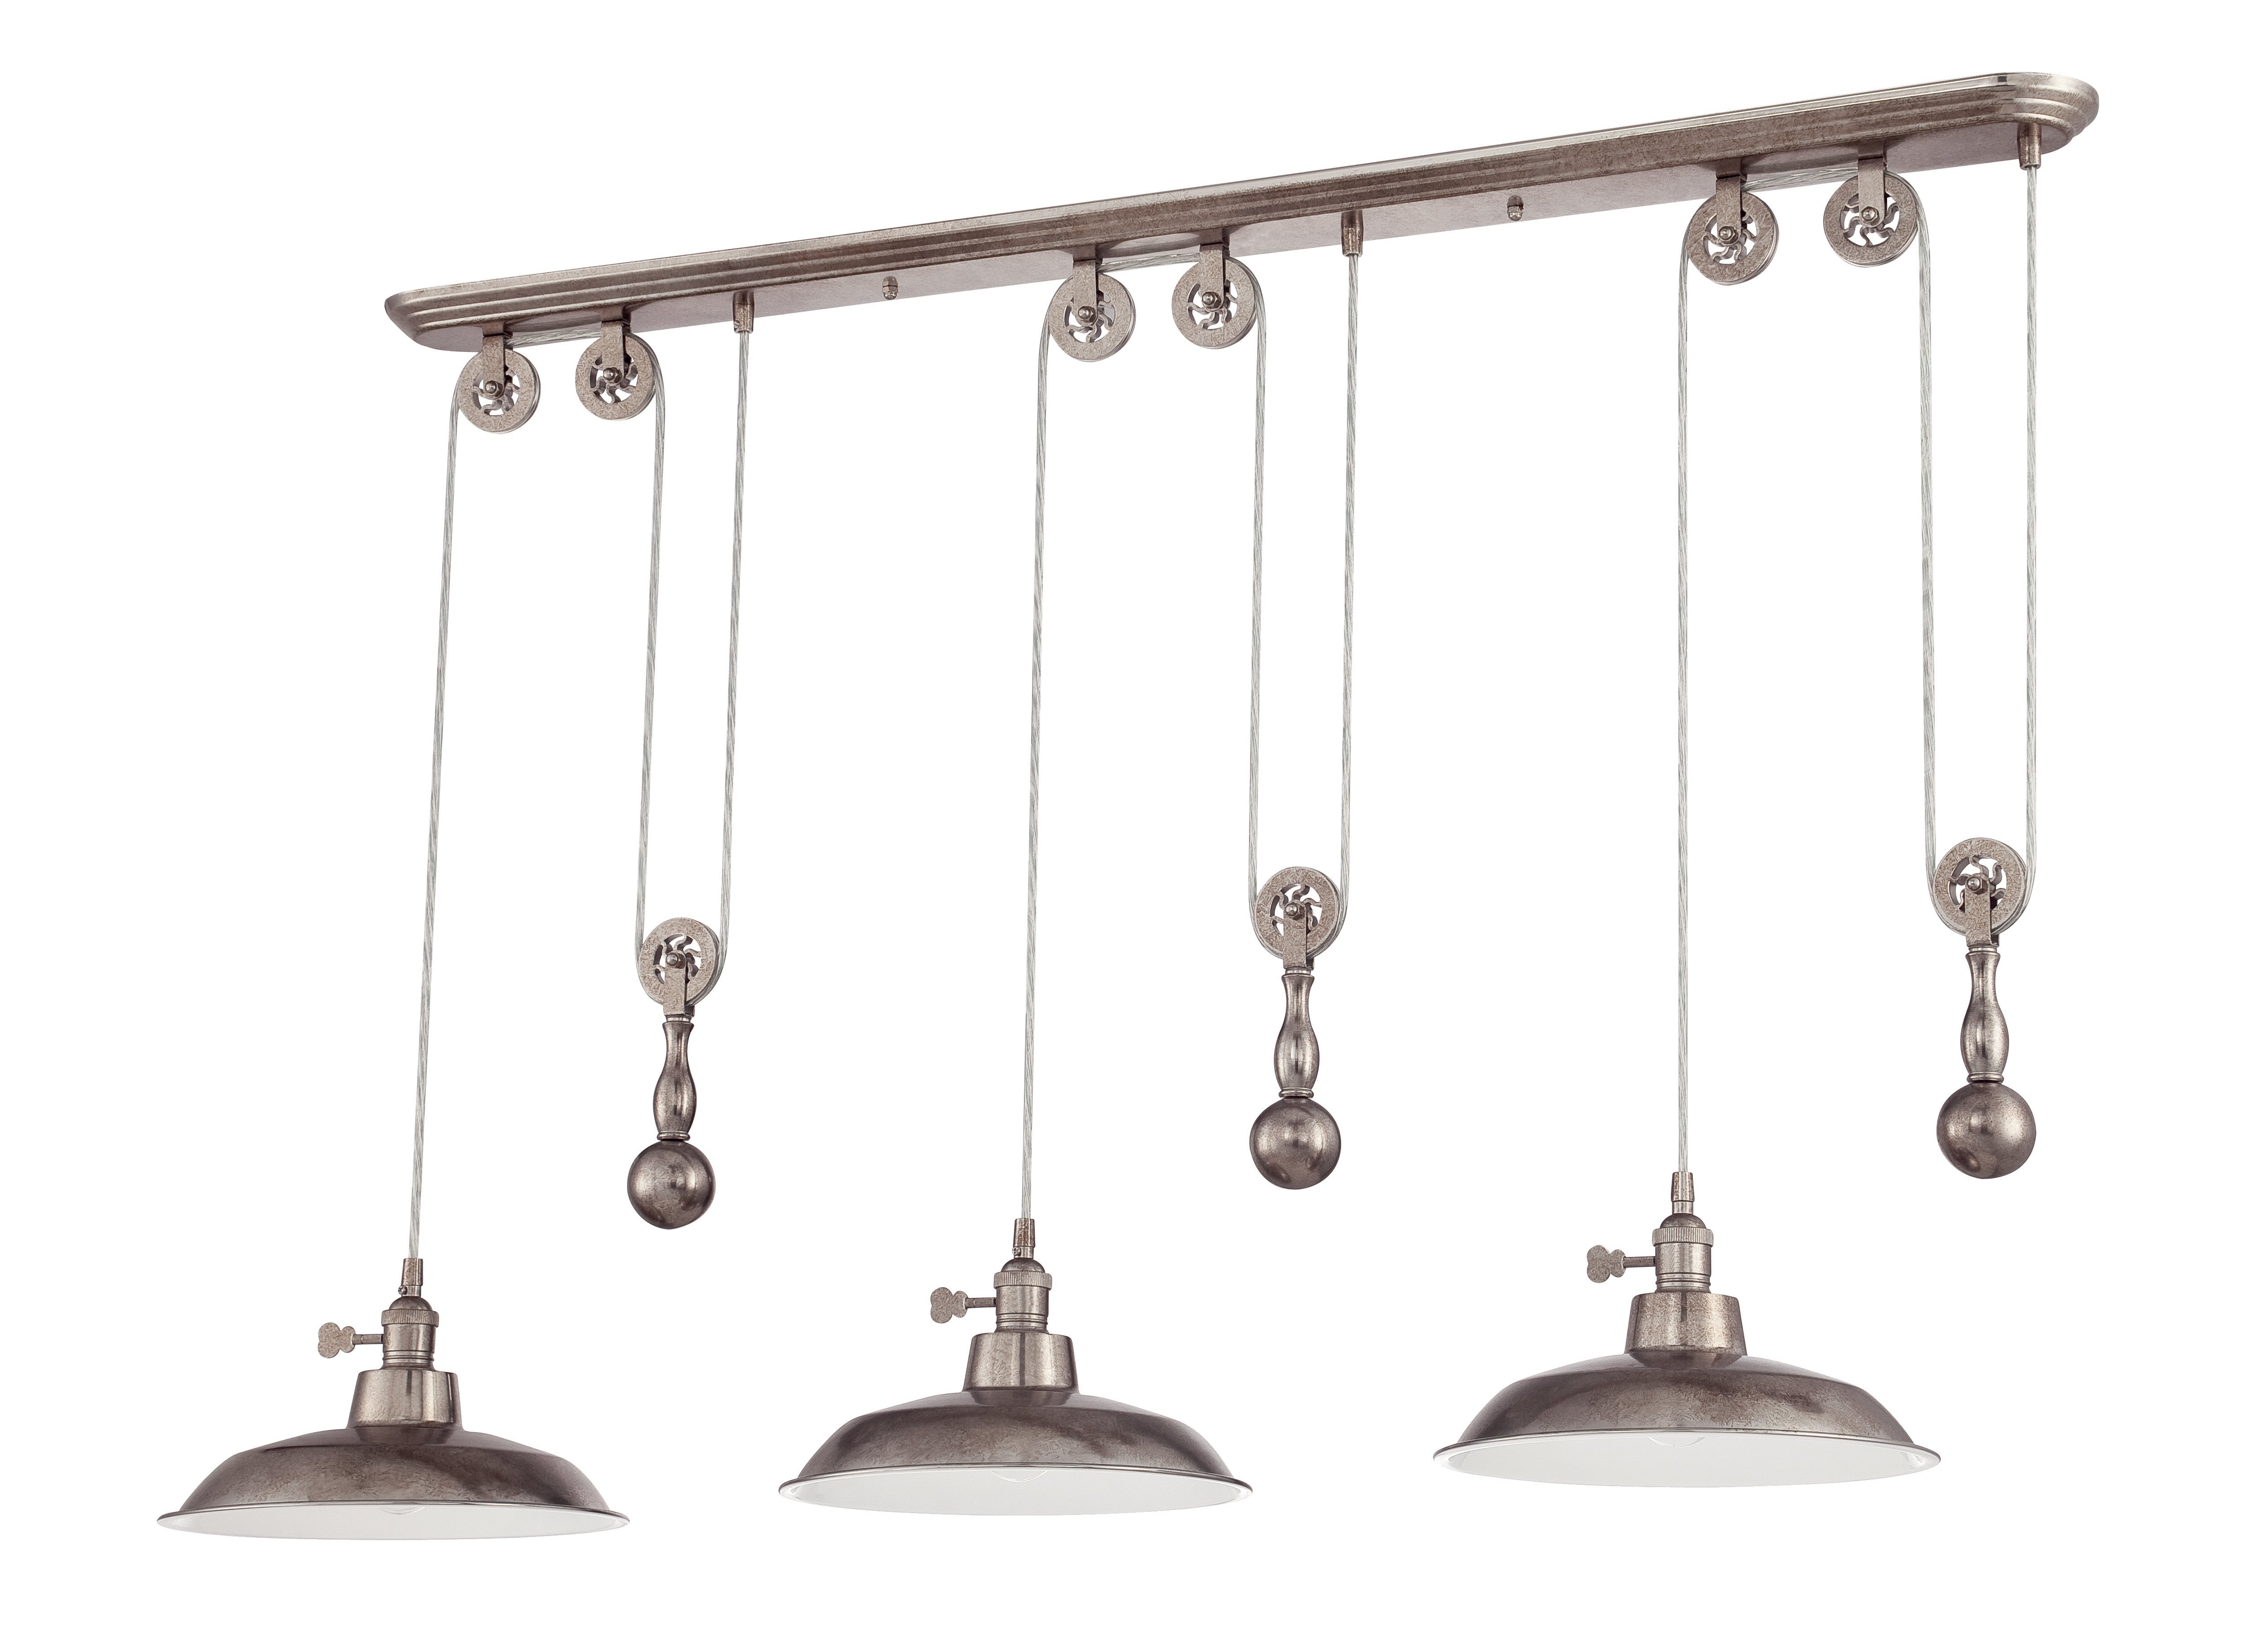 Ariel 3 Light Kitchen Island Dome Pendant For Popular Ariel 2 Light Kitchen Island Dome Pendants (View 7 of 25)